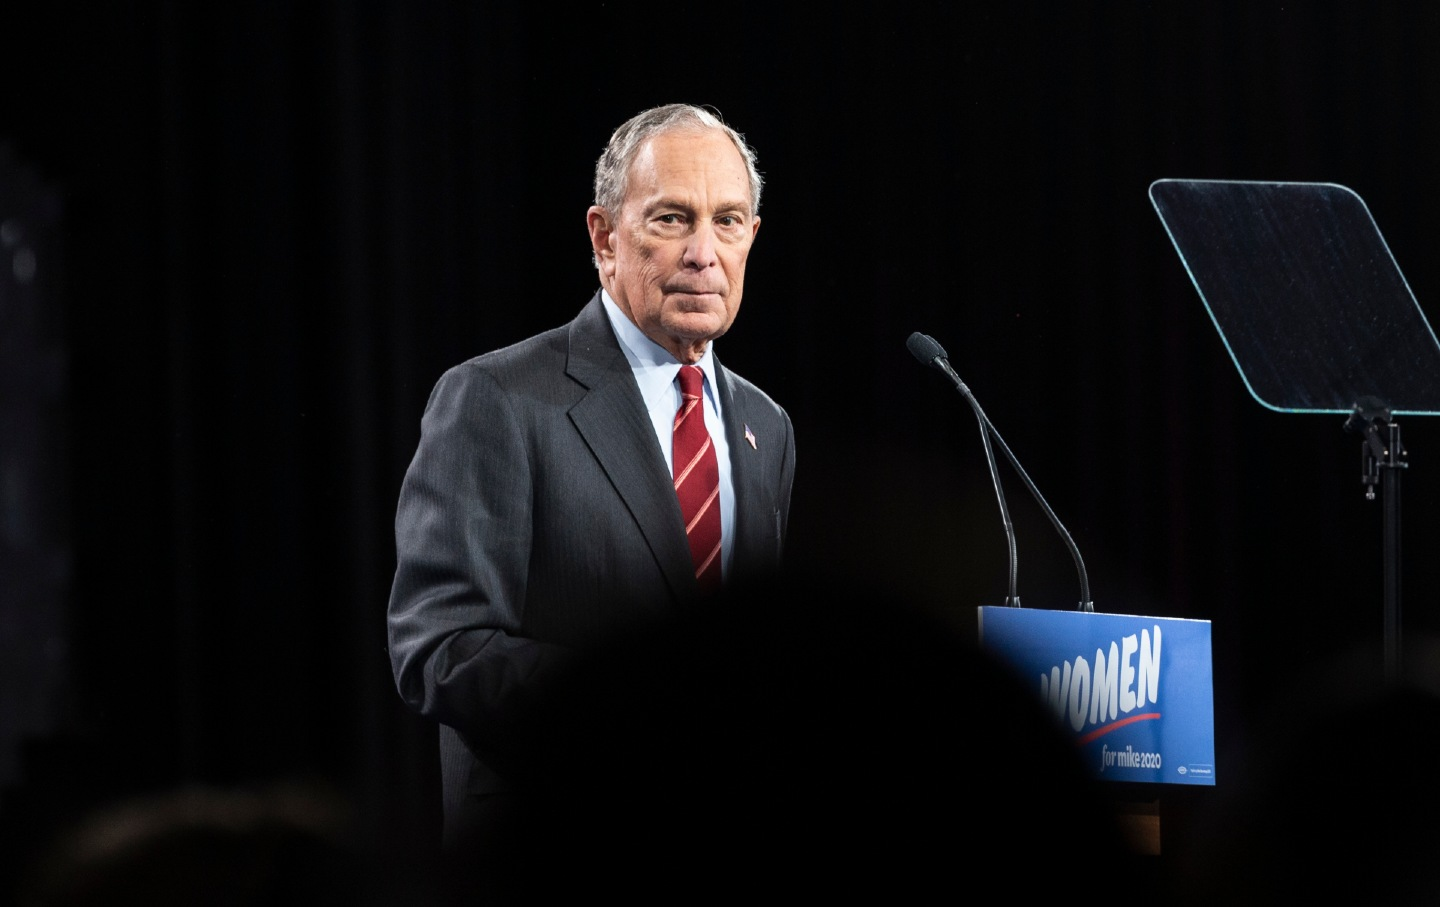 Mike Bloomberg Democratic Presidential candidate speaks during the 2020 launch Women for Mike at Sheraton New York